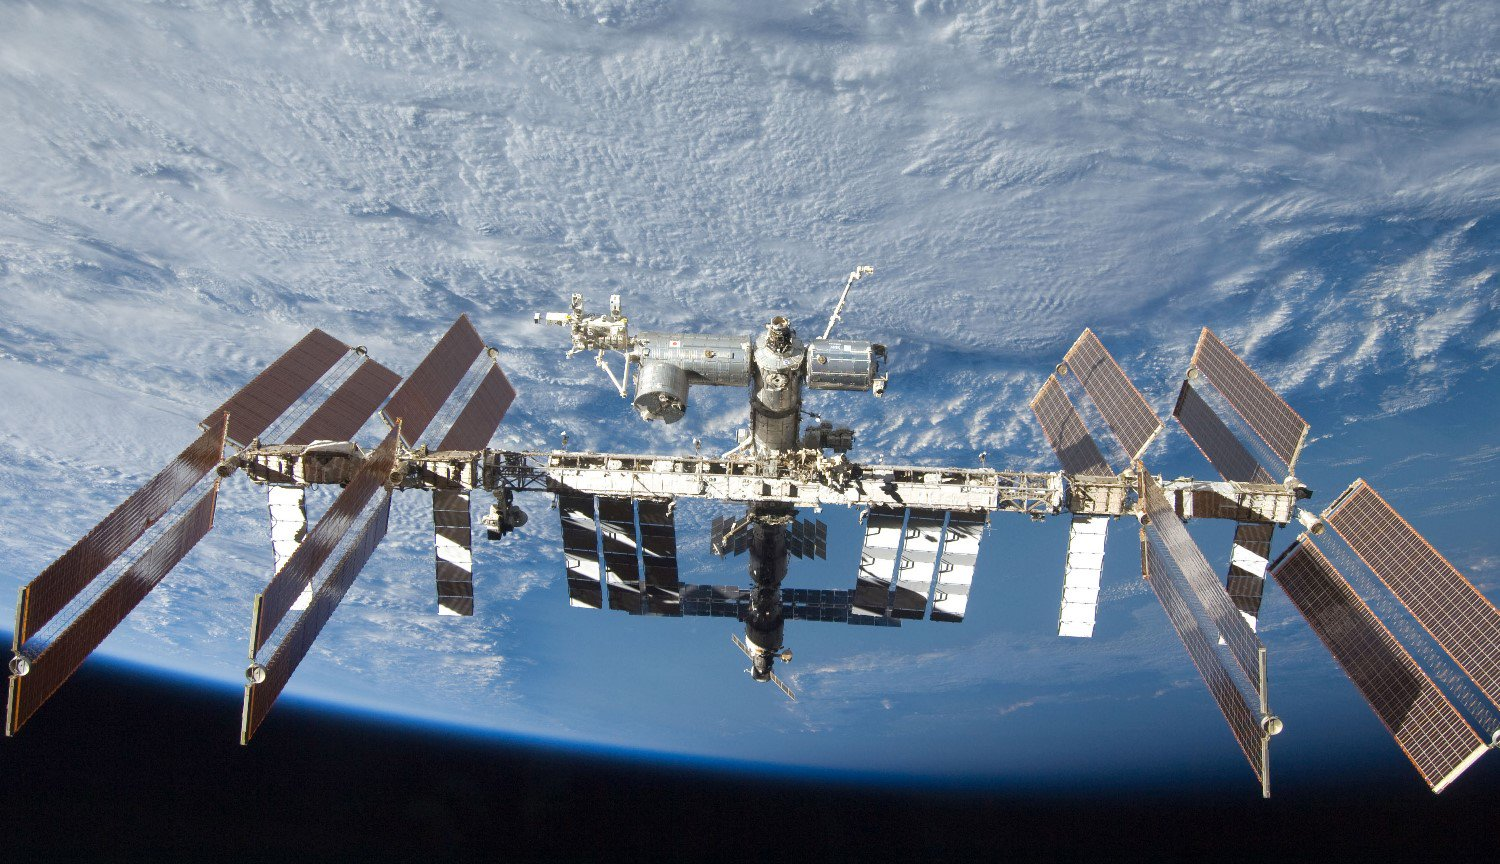 The new coating has protected ISS from superbugs